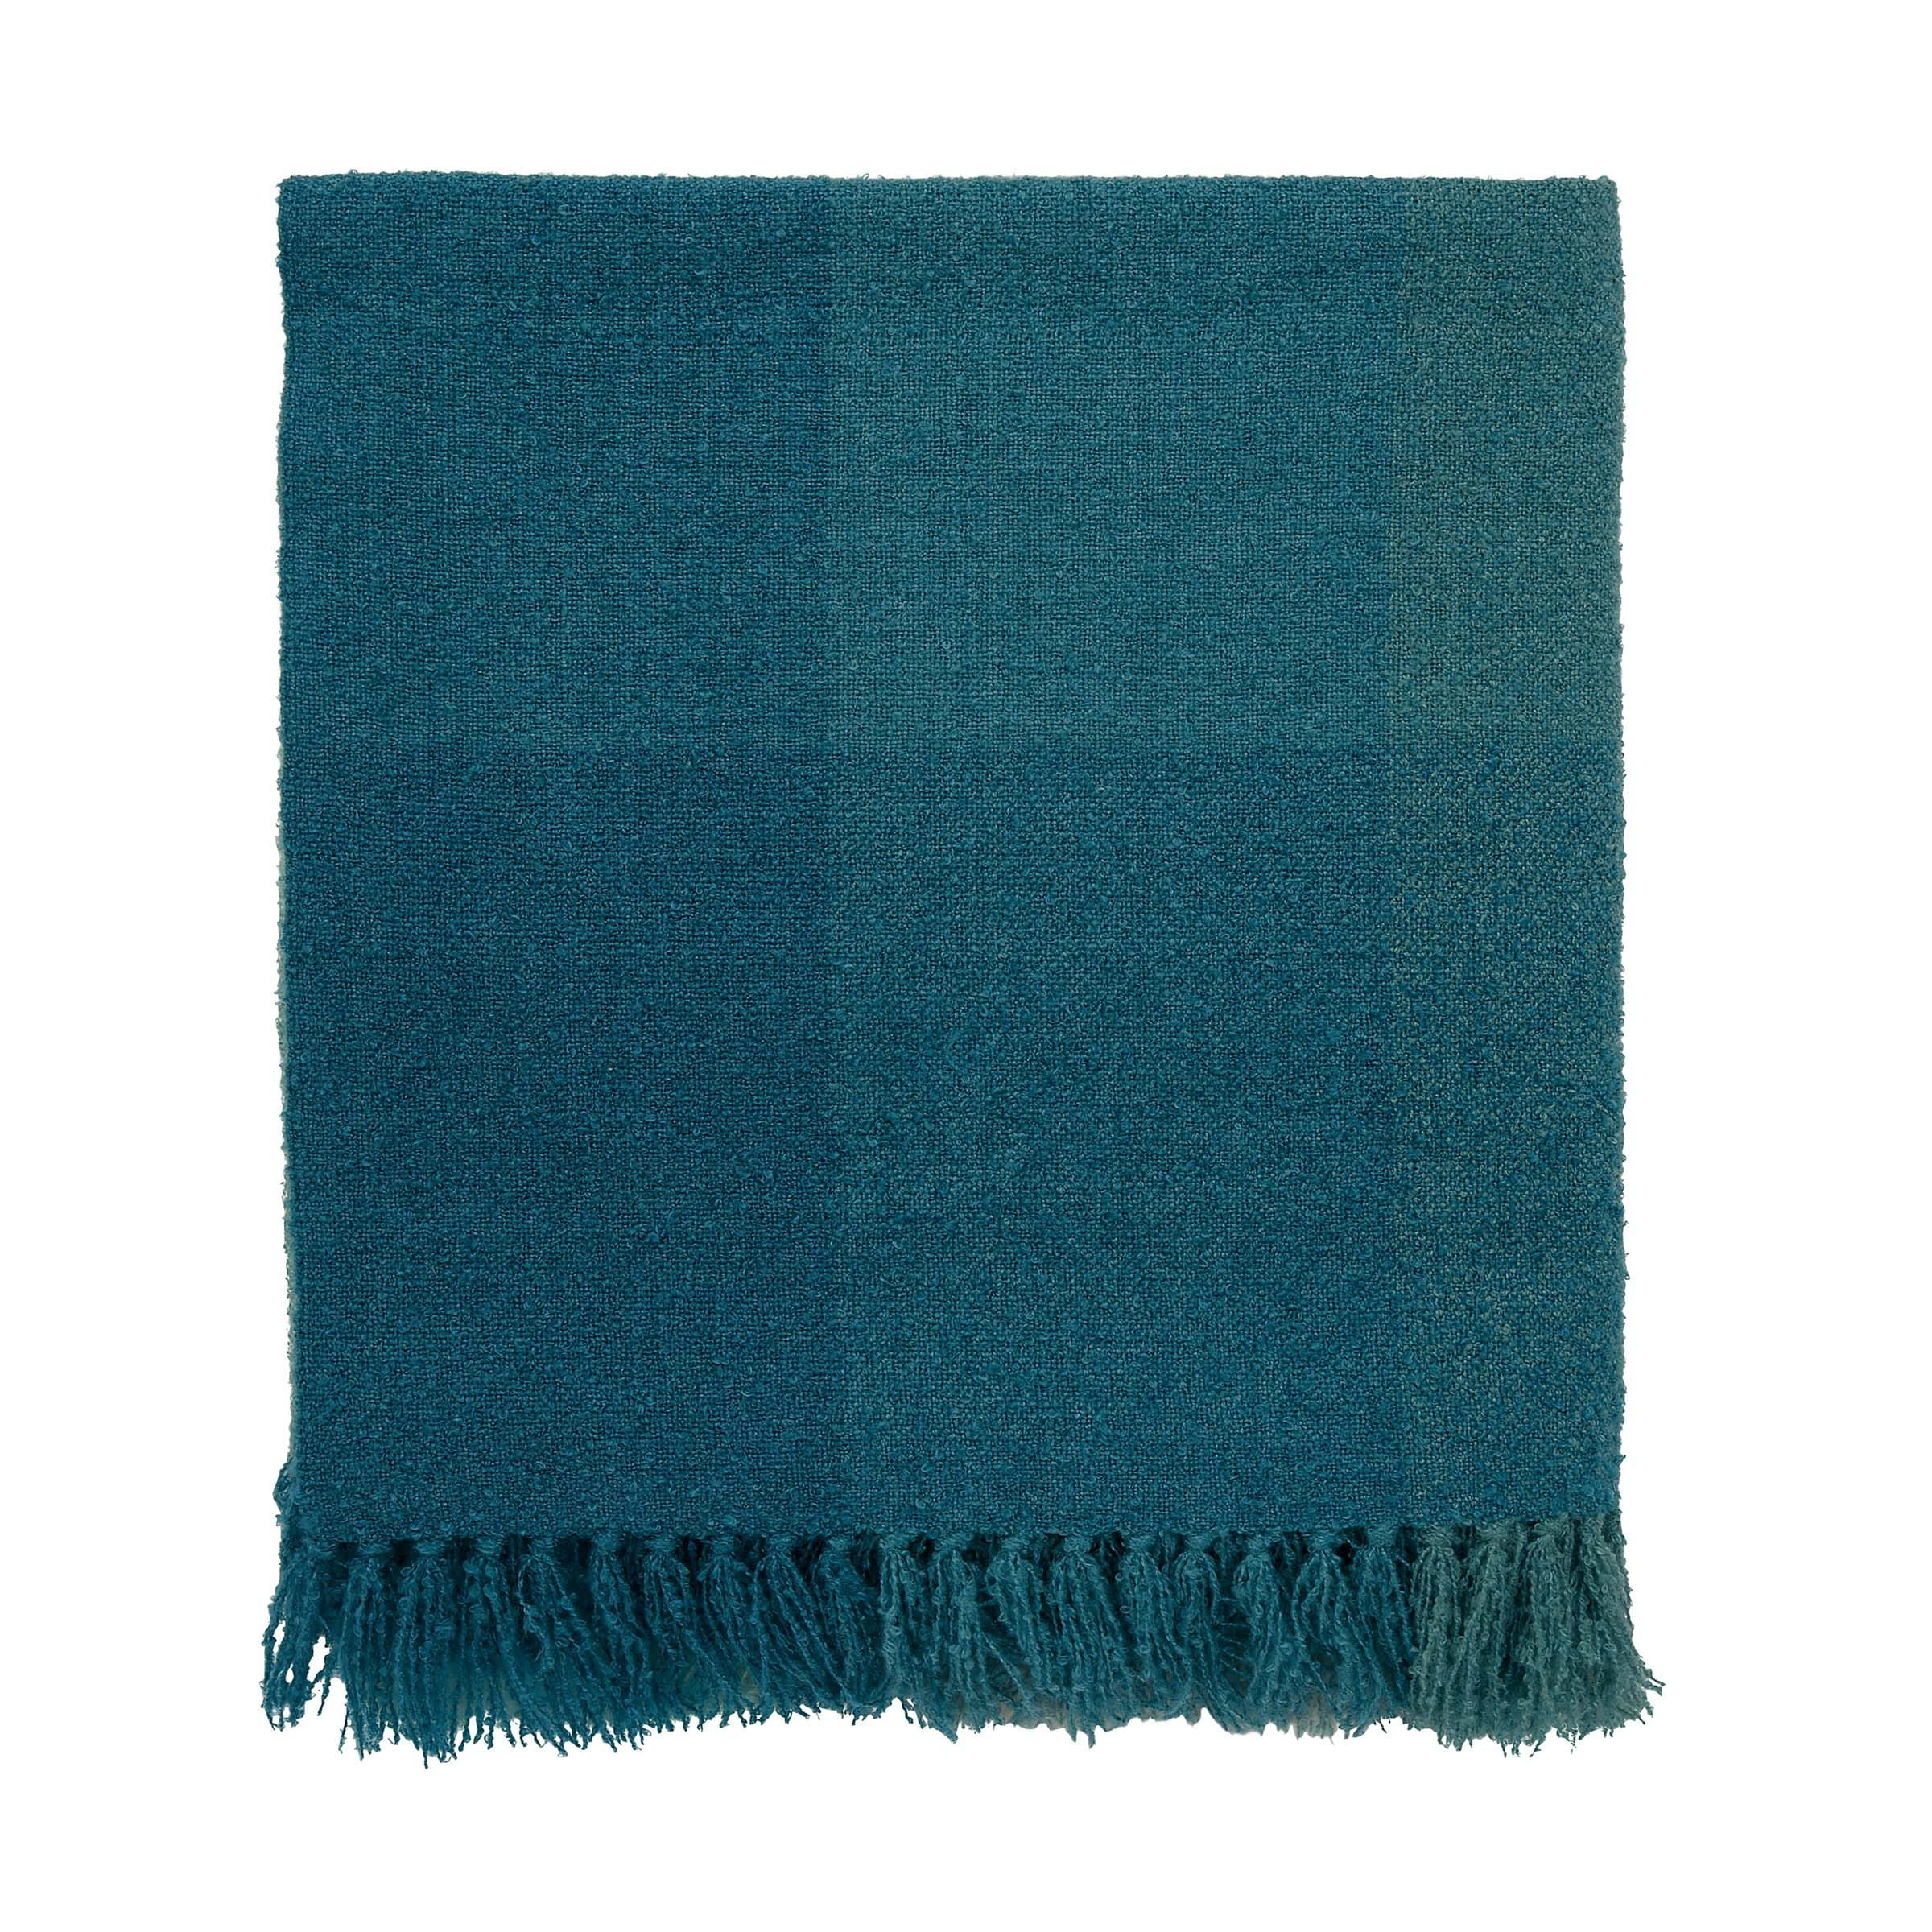 Joules Cotswold Ombre Woven Throw, Multi